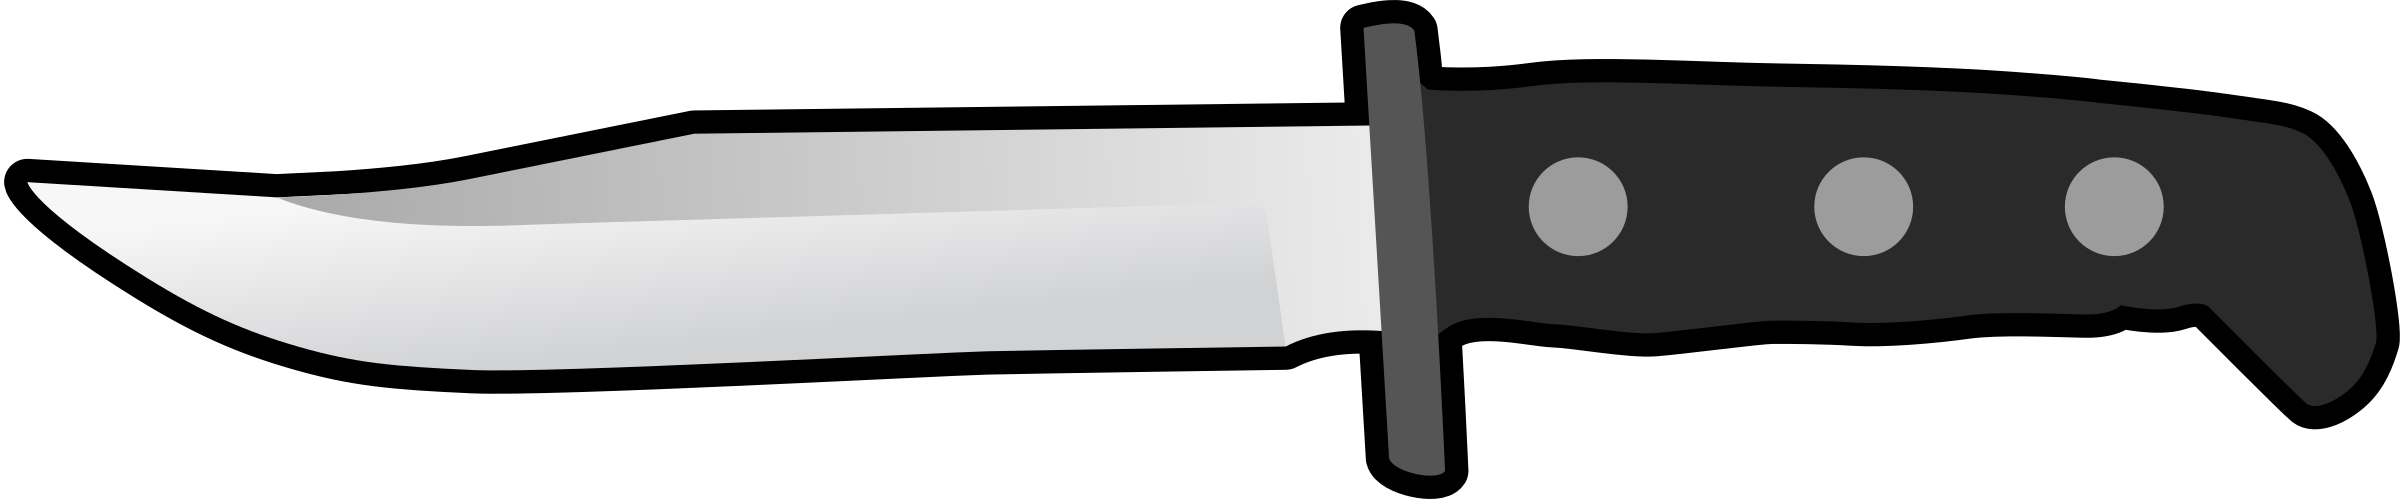 Computer clip art simple. Clipart flat knife side